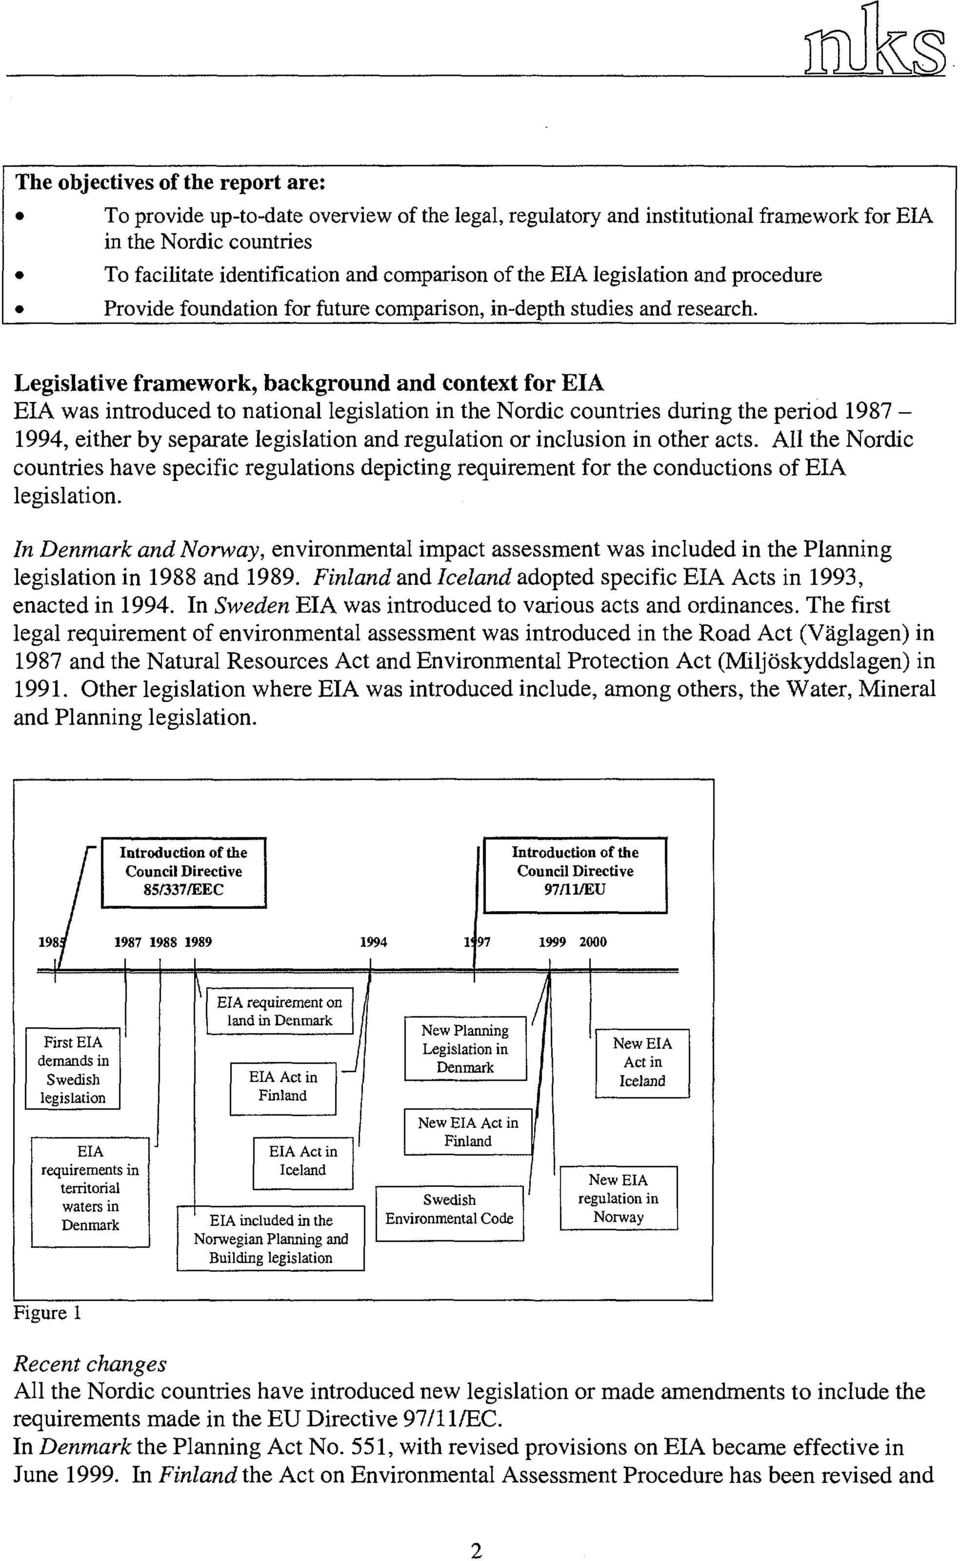 Legislative framework, background and context for EIA EIA was introduced to national legislation in the Nordic countries during the period 1987-1994, either by separate legislation and regulation or